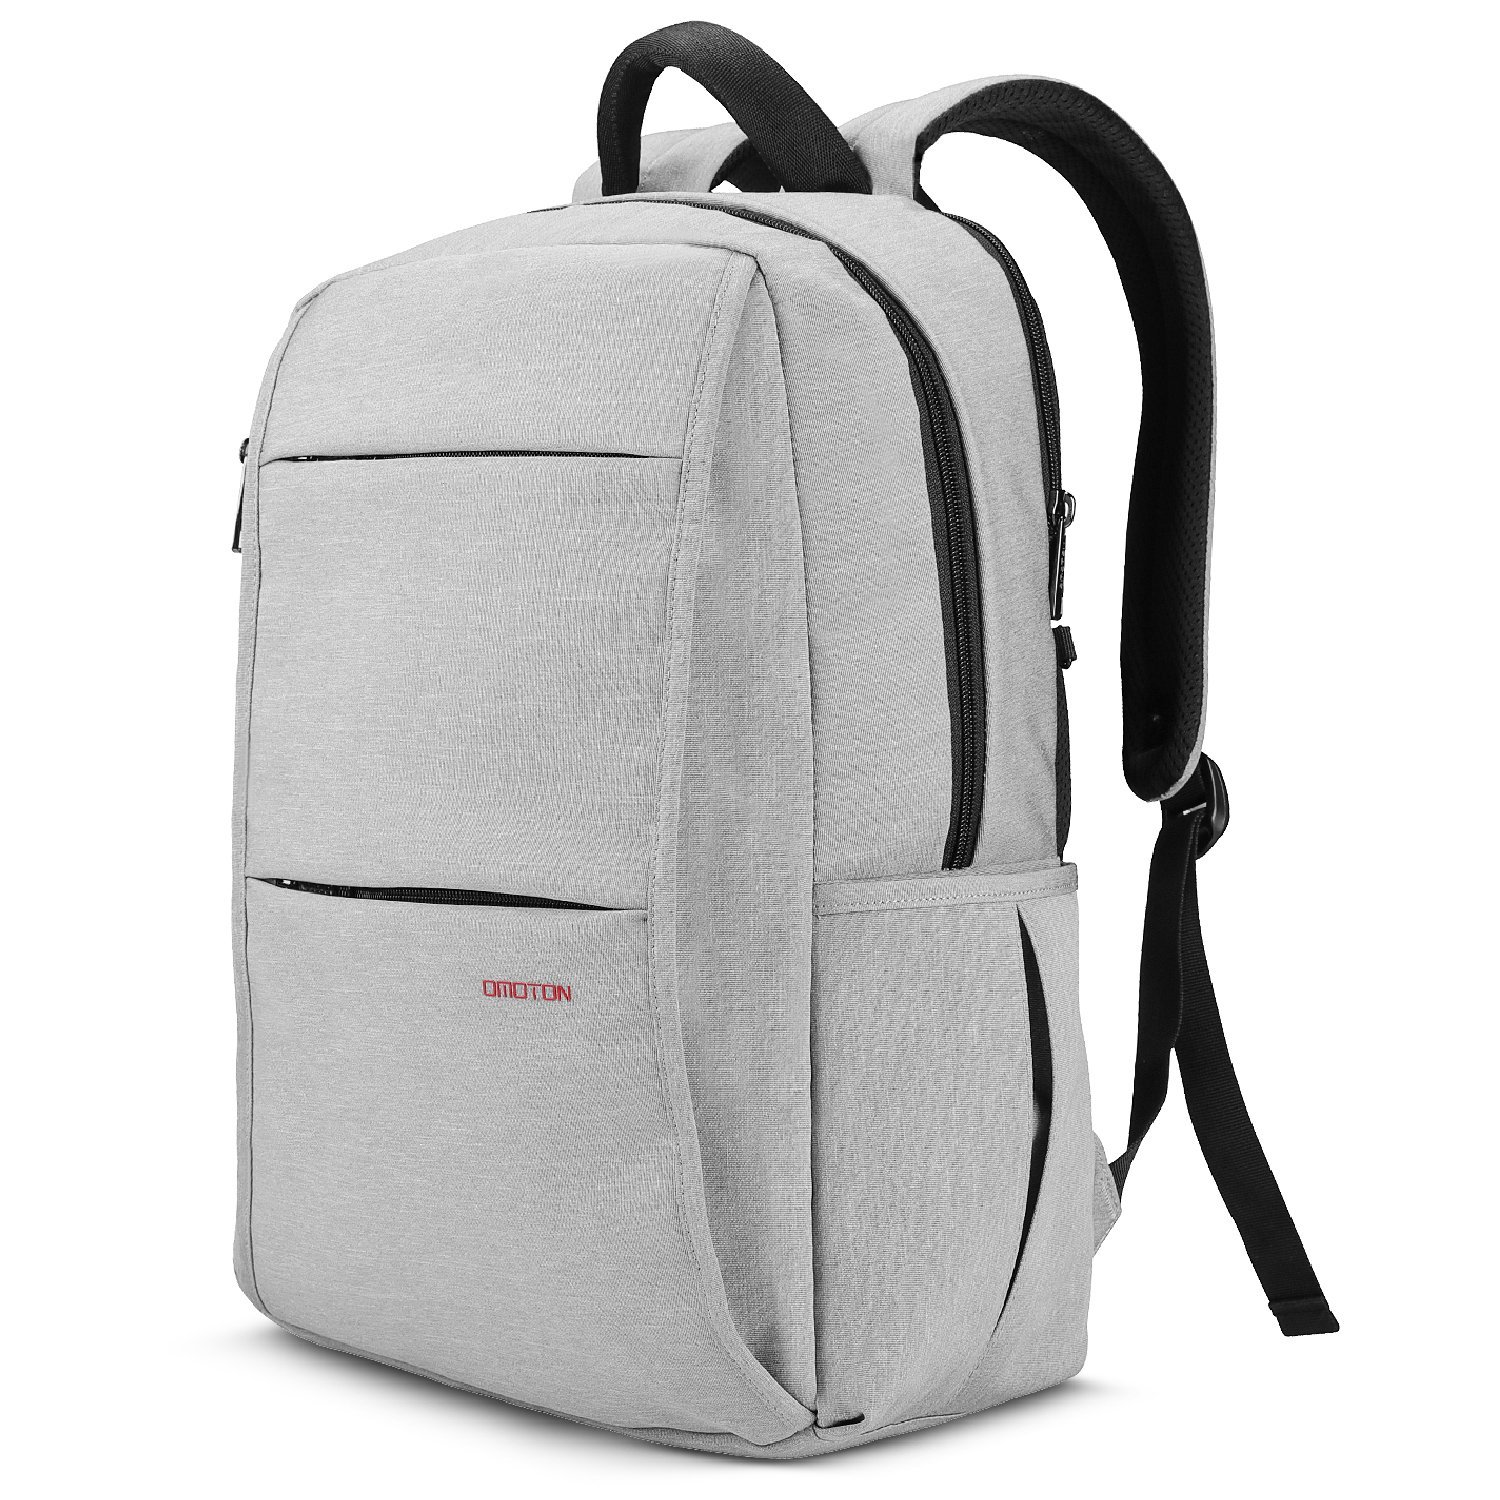 OMOTON Backpack, Anti-theft